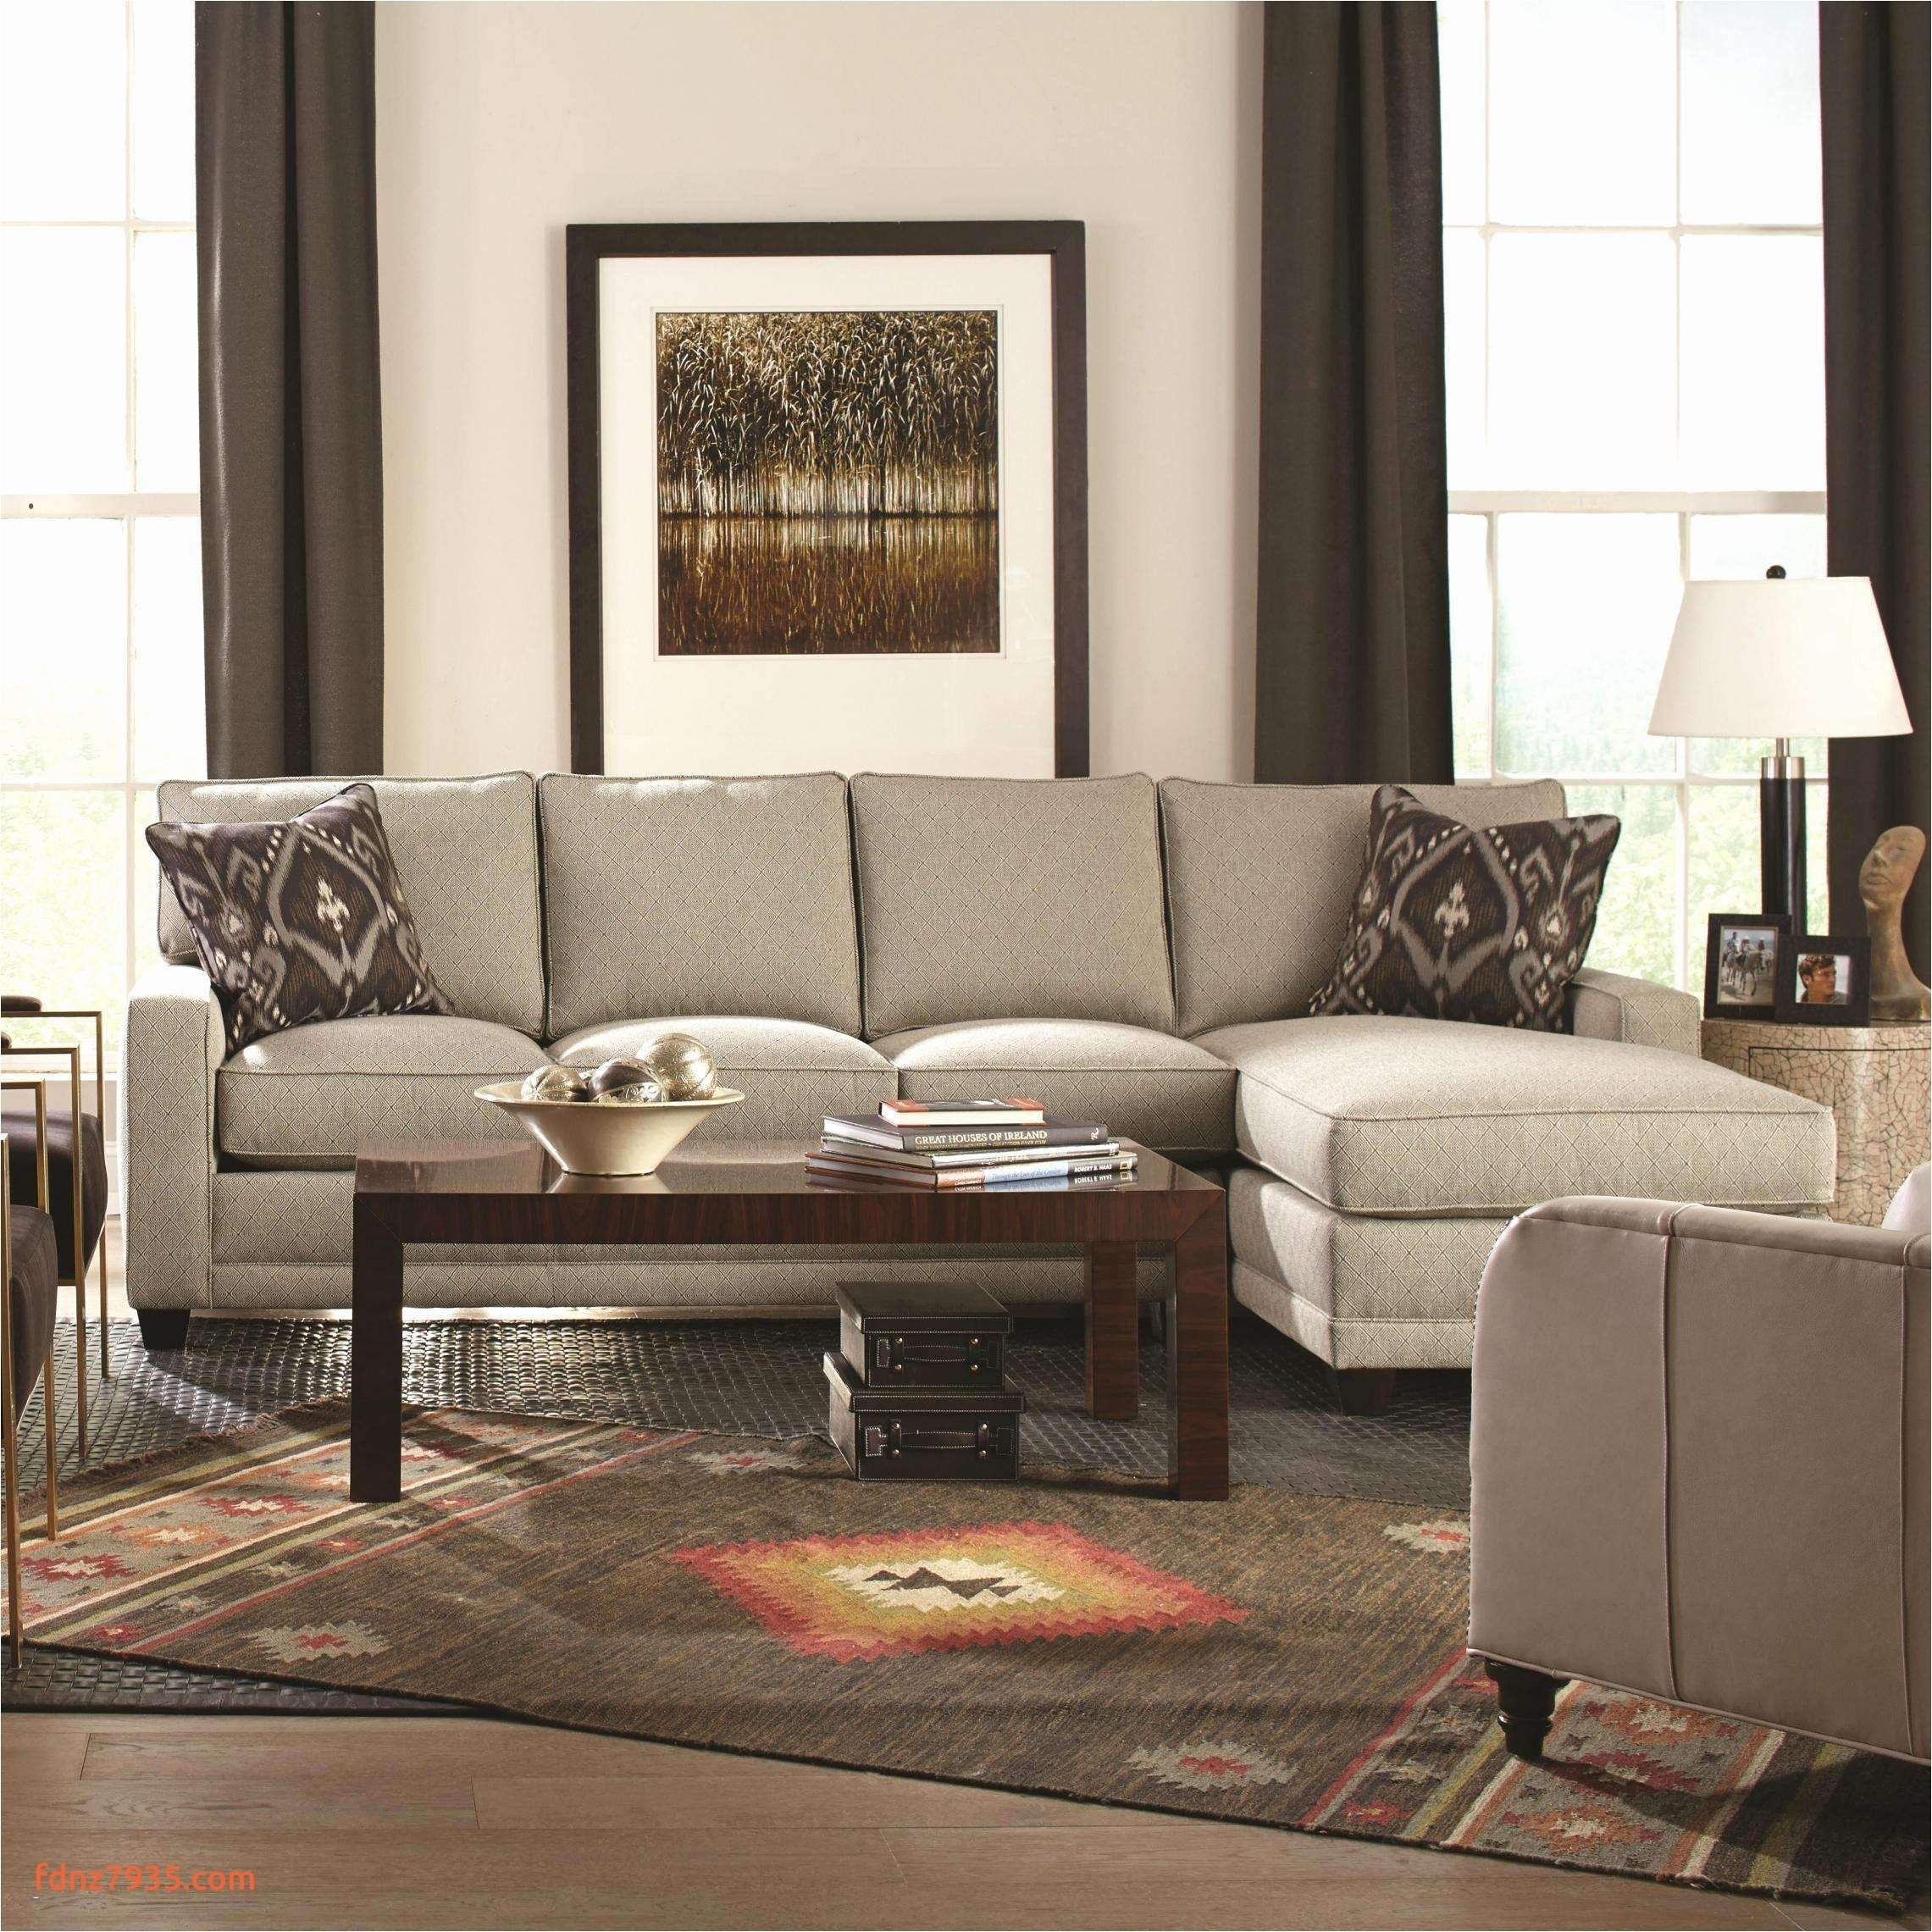 brown living room ideas beautiful brown sofa decorating ideas fresh sofa design of brown living room ideas